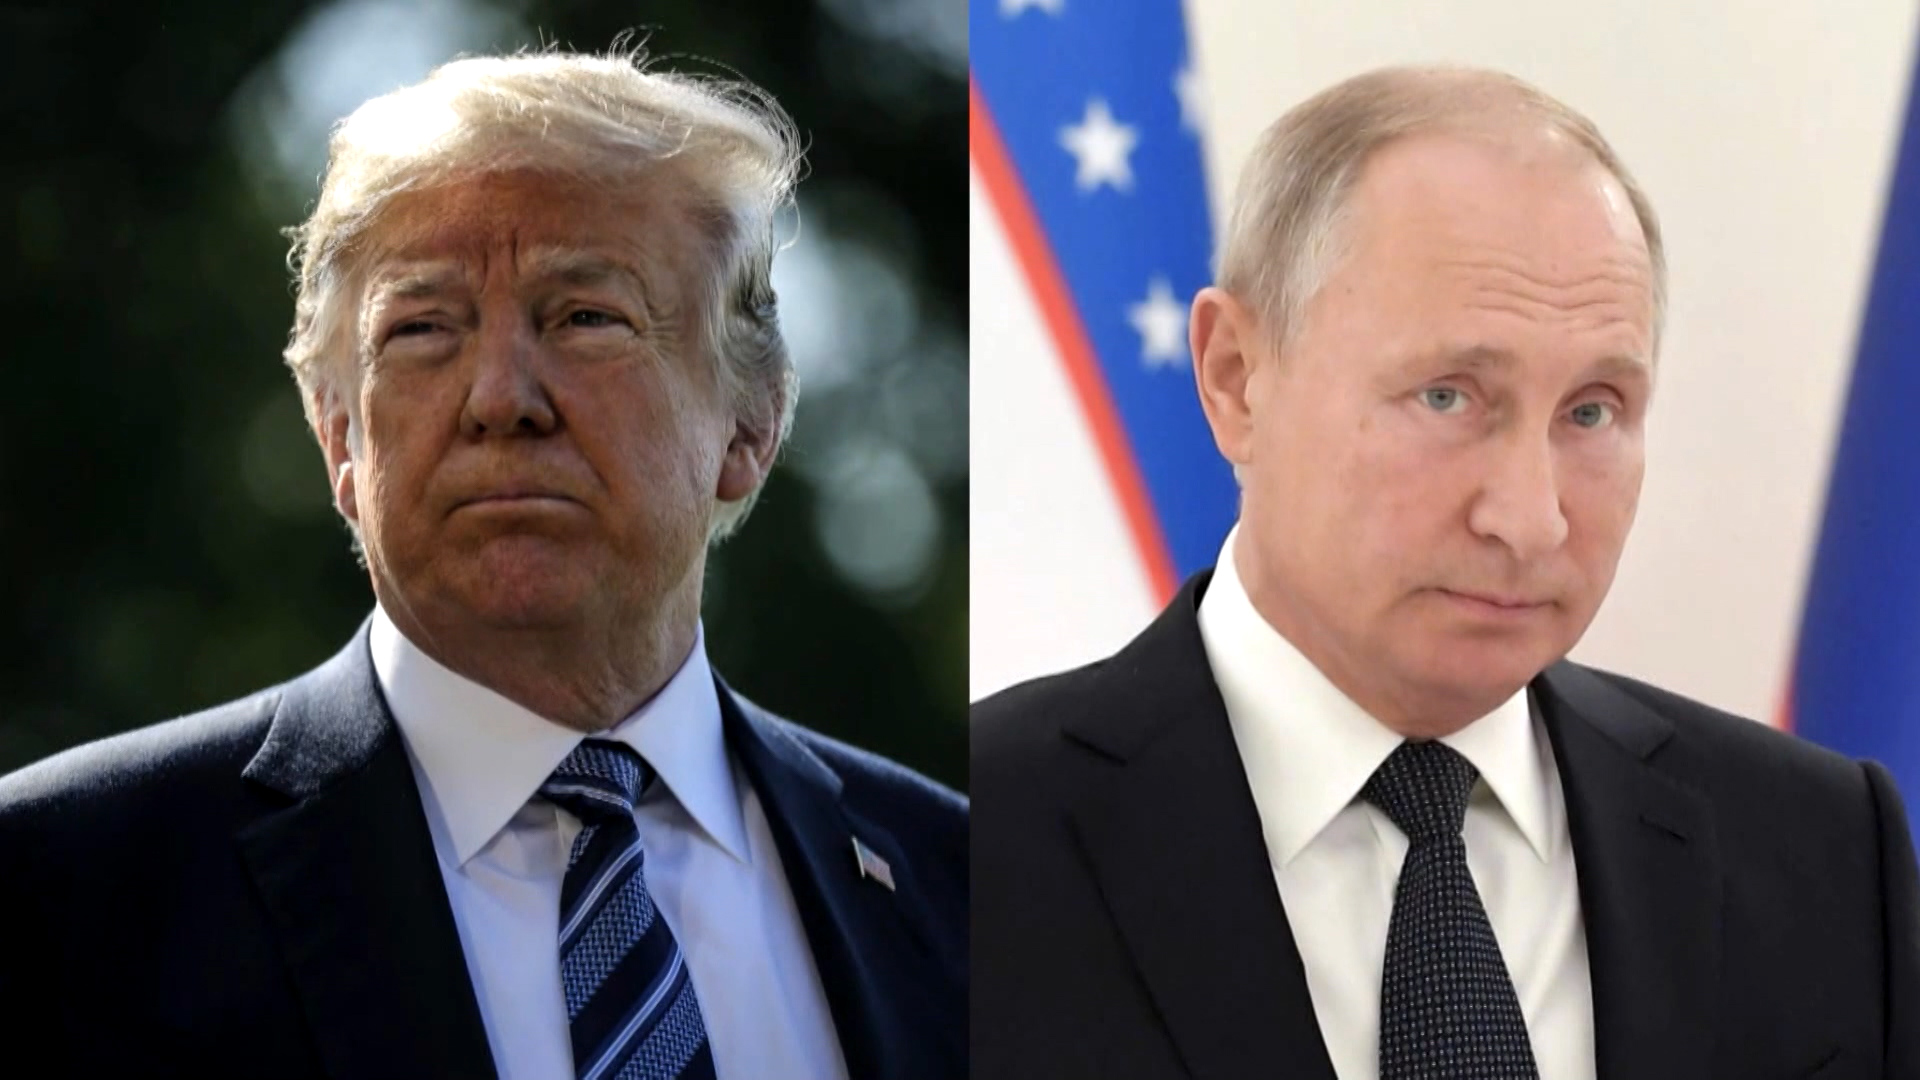 Trump withdraws from Putin meeting due to Ukraine crisis